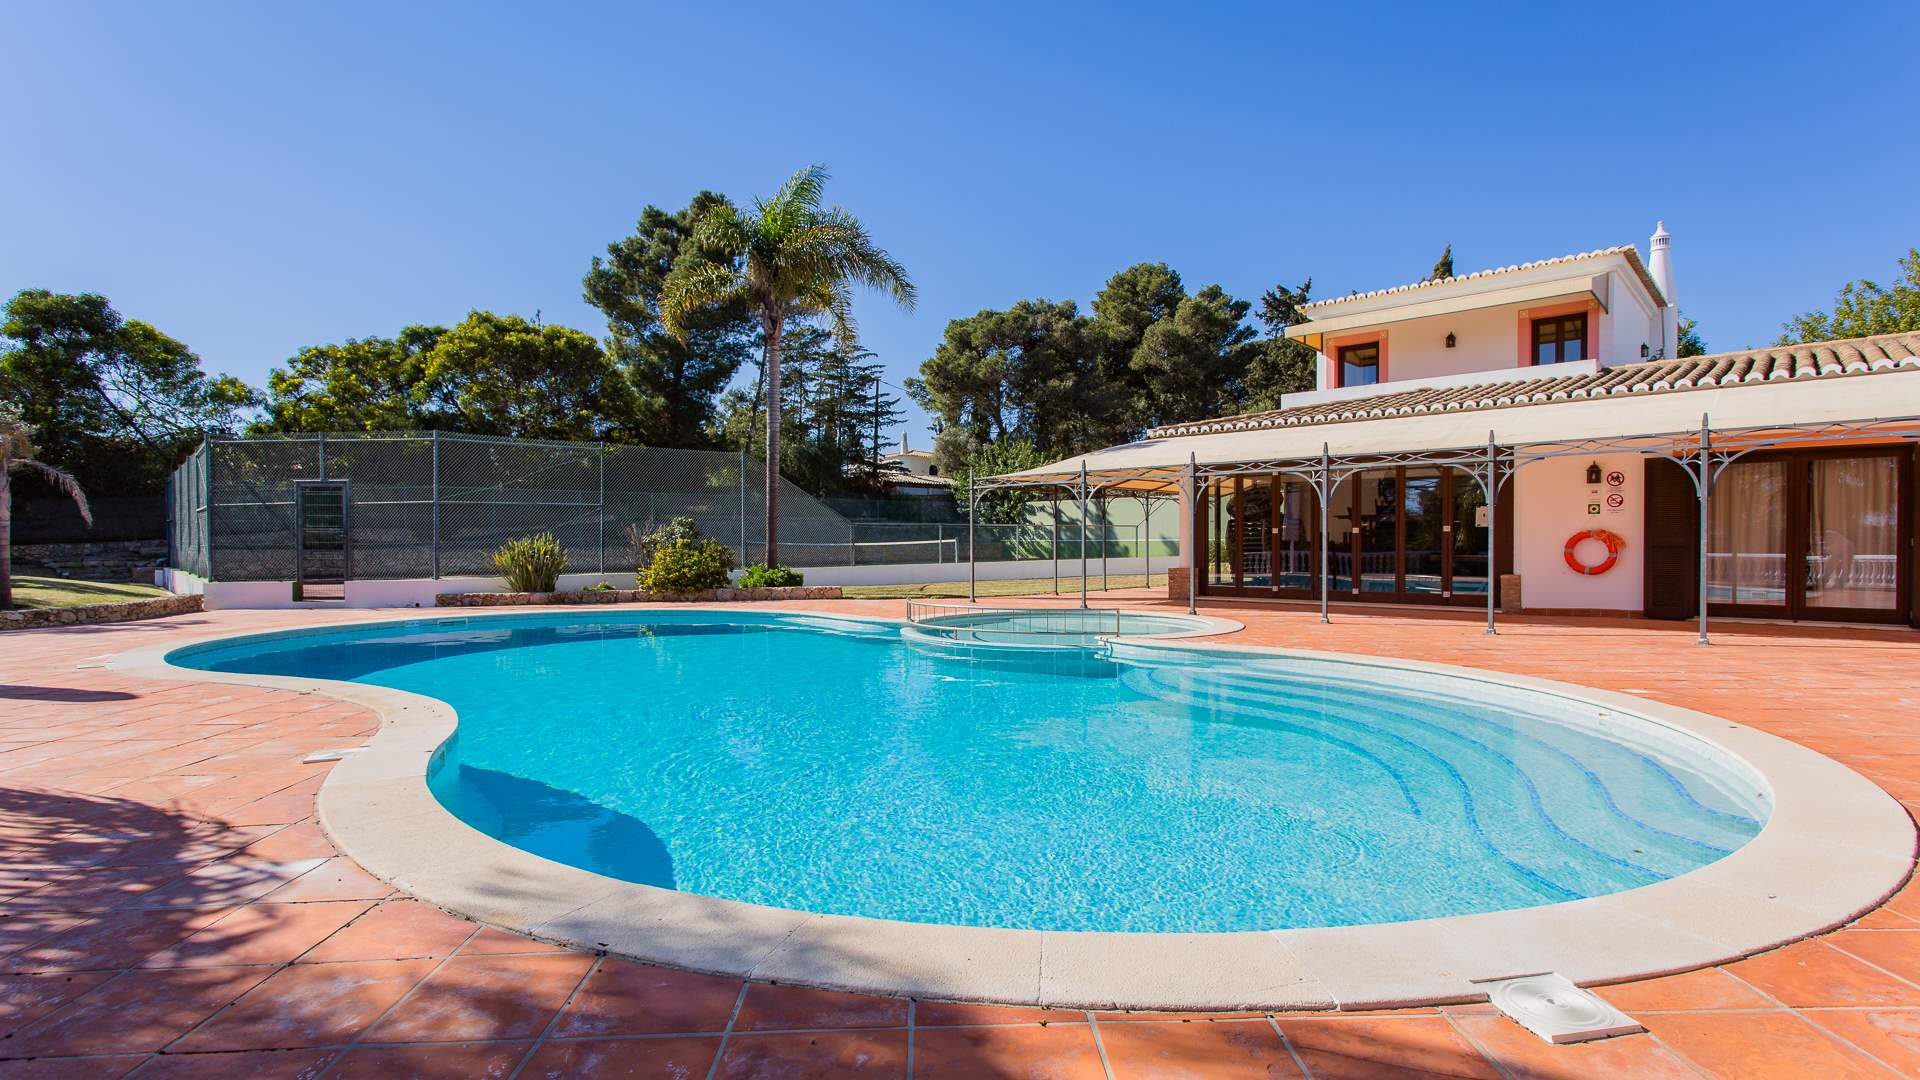 Casa Mouraria, 8 Bedrooms Rate with separate apartment, 8 bedroom villa in Carvoeiro Area, Algarve Photo #2